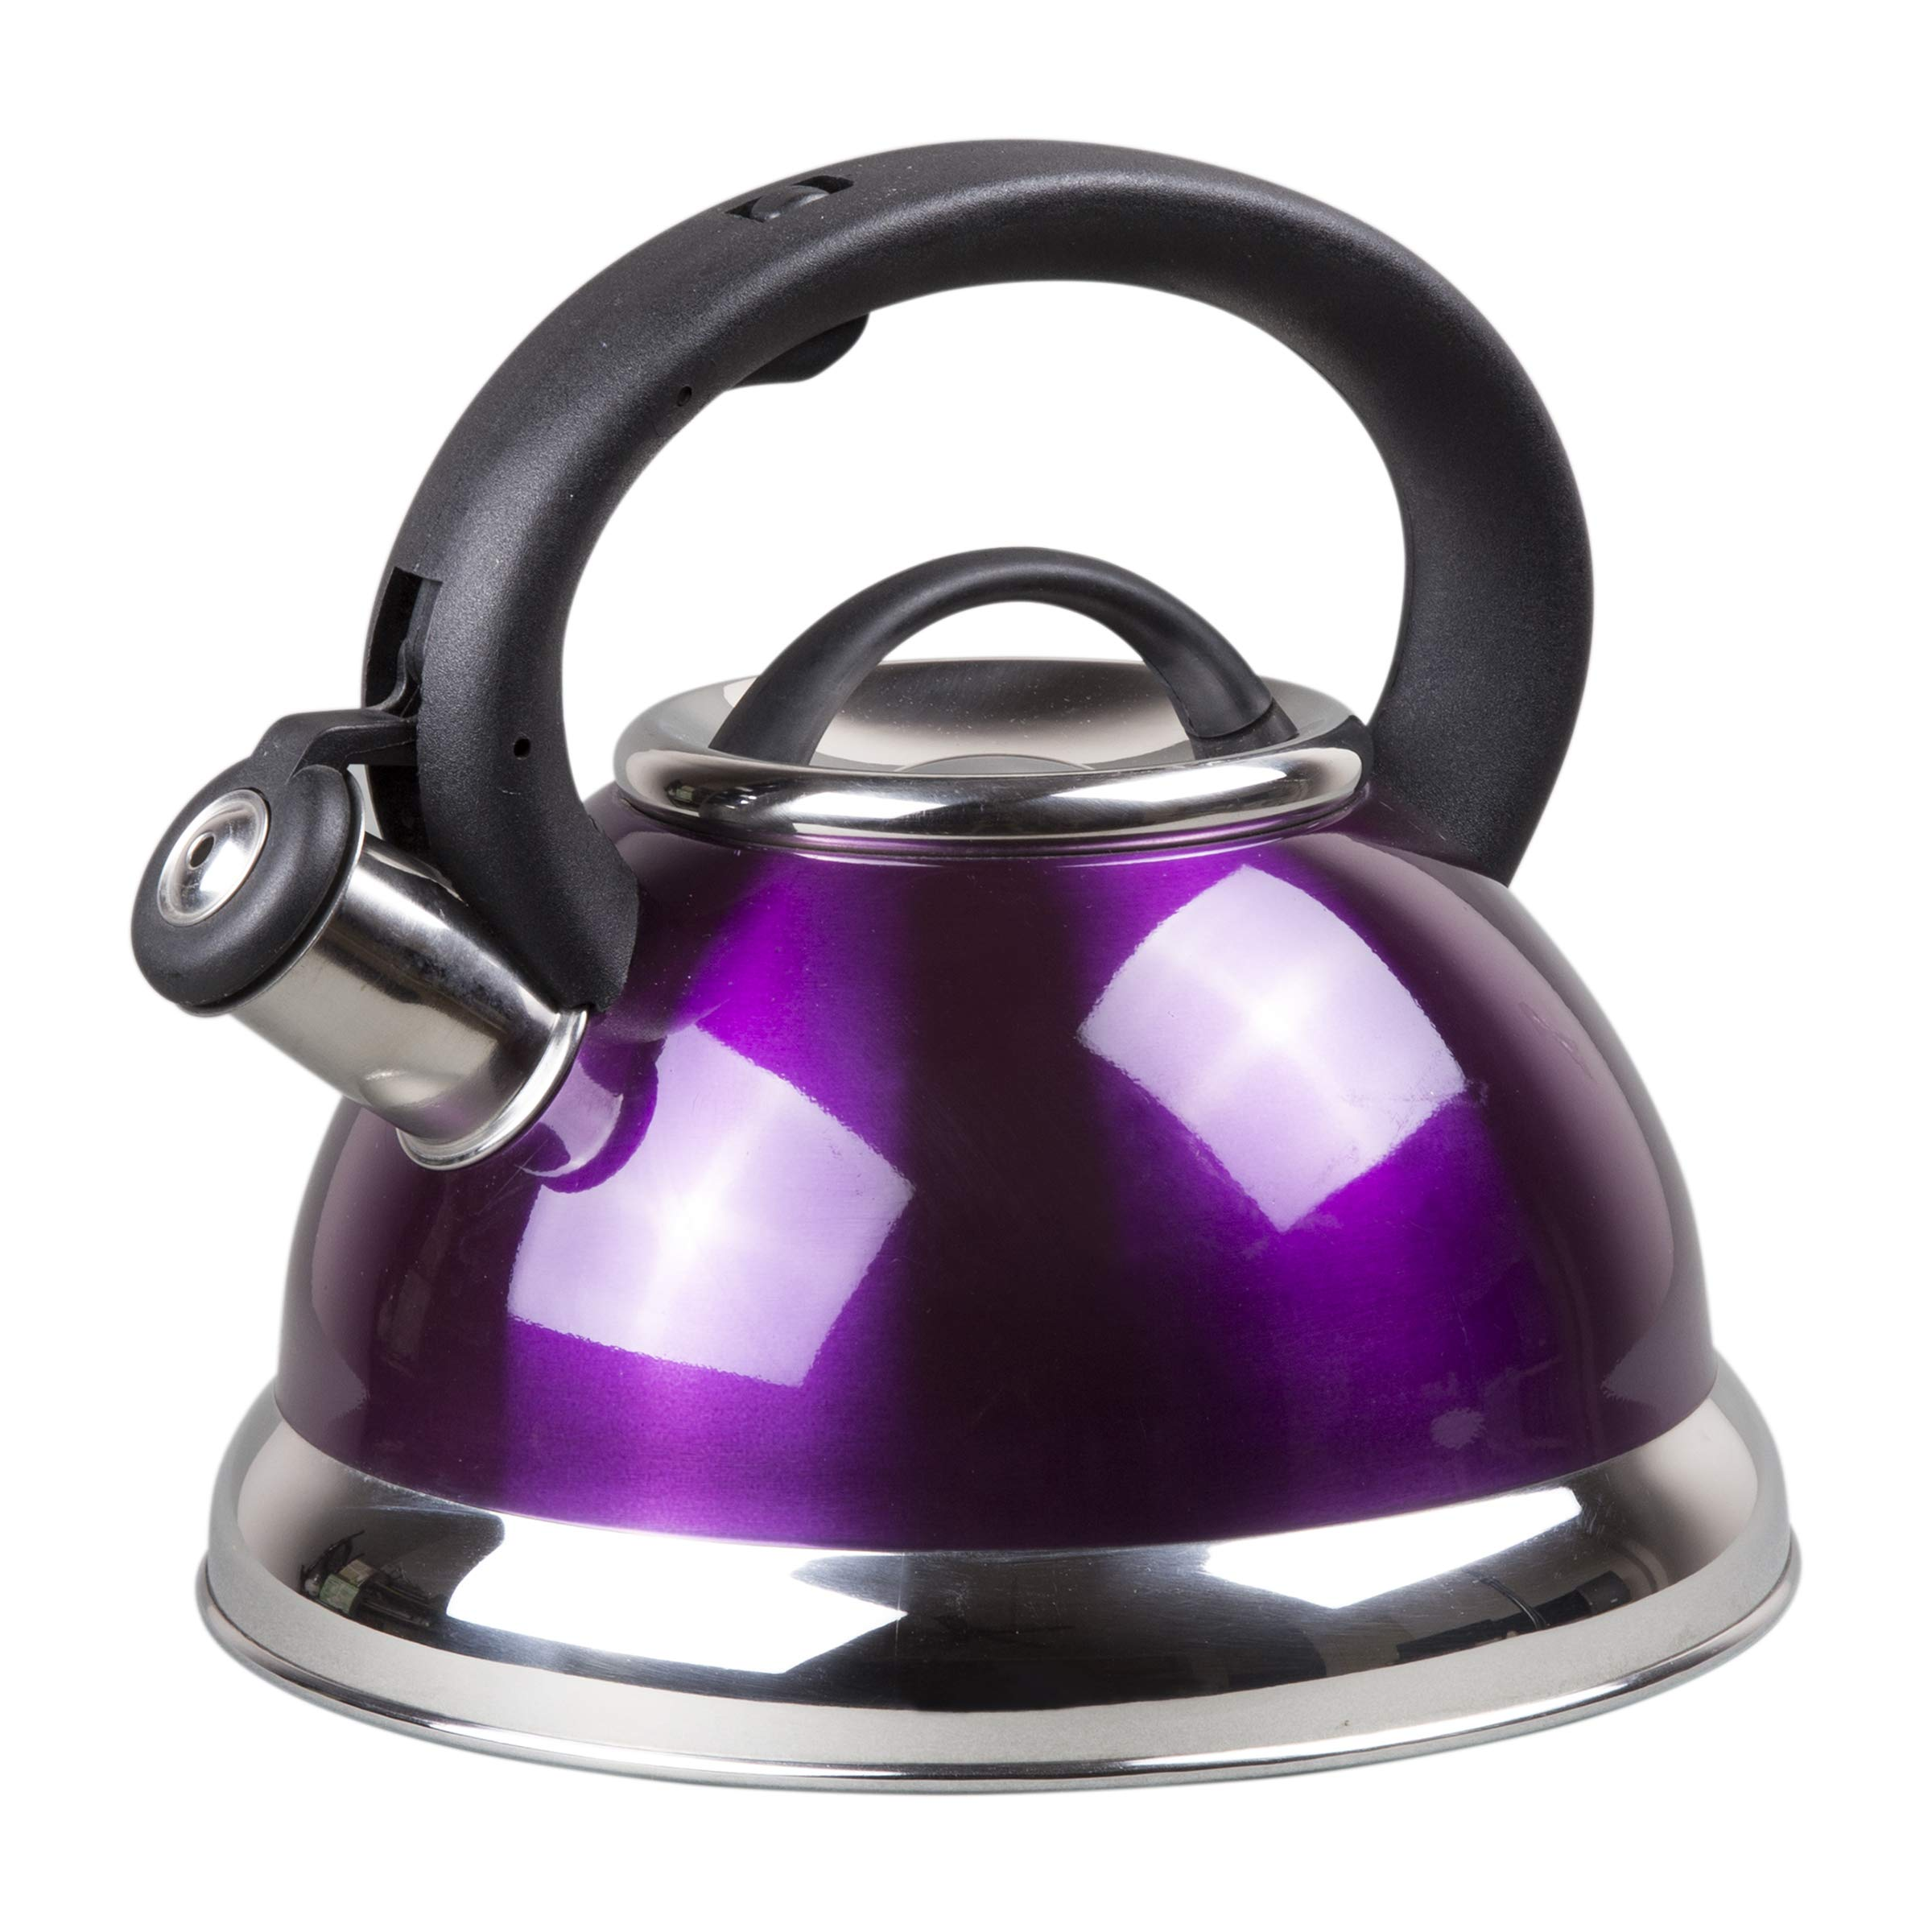 Creative Home Alexa Stainless Steel Whistling Tea Kettle, Purple, 3.0 Quart by Creative Home